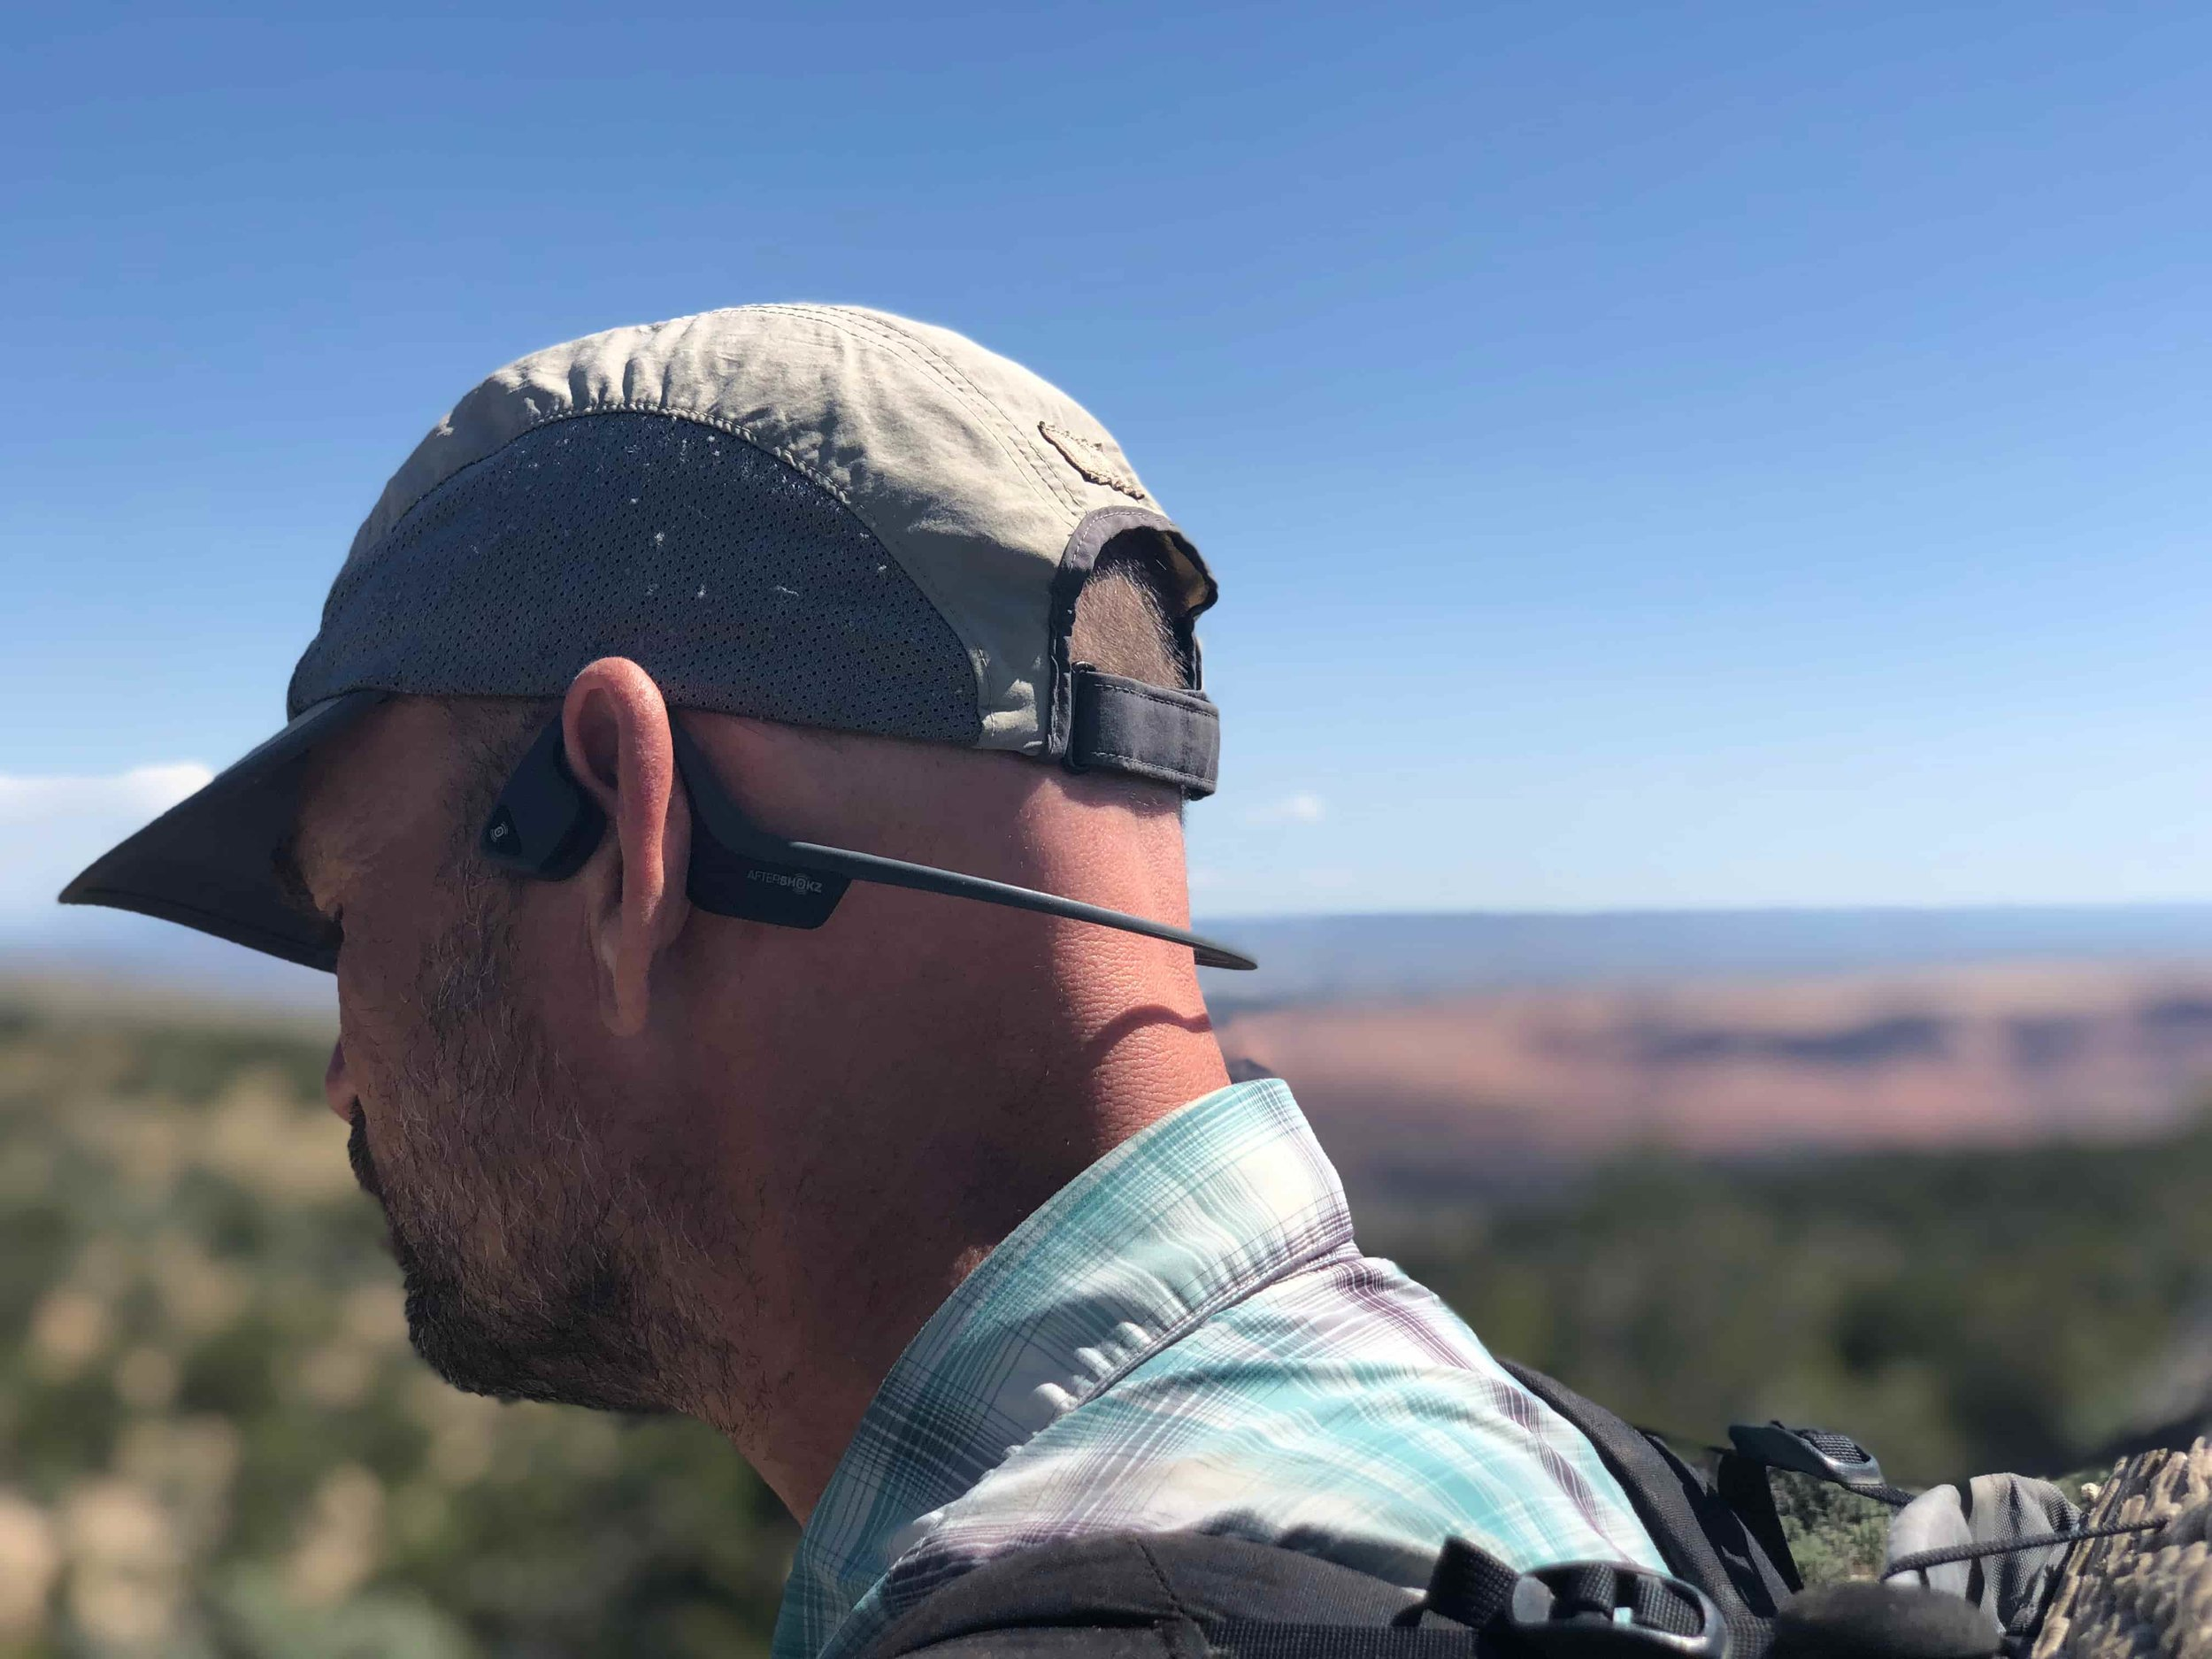 We both give a big thumbs up to the Aftershokz Trekz Air headphones. They work by not covering your eardrums, meaning you can still hear that rattlesnake, car approaching, or your hiking partner calling for help. Photo courtesy Naomi Hudetz.